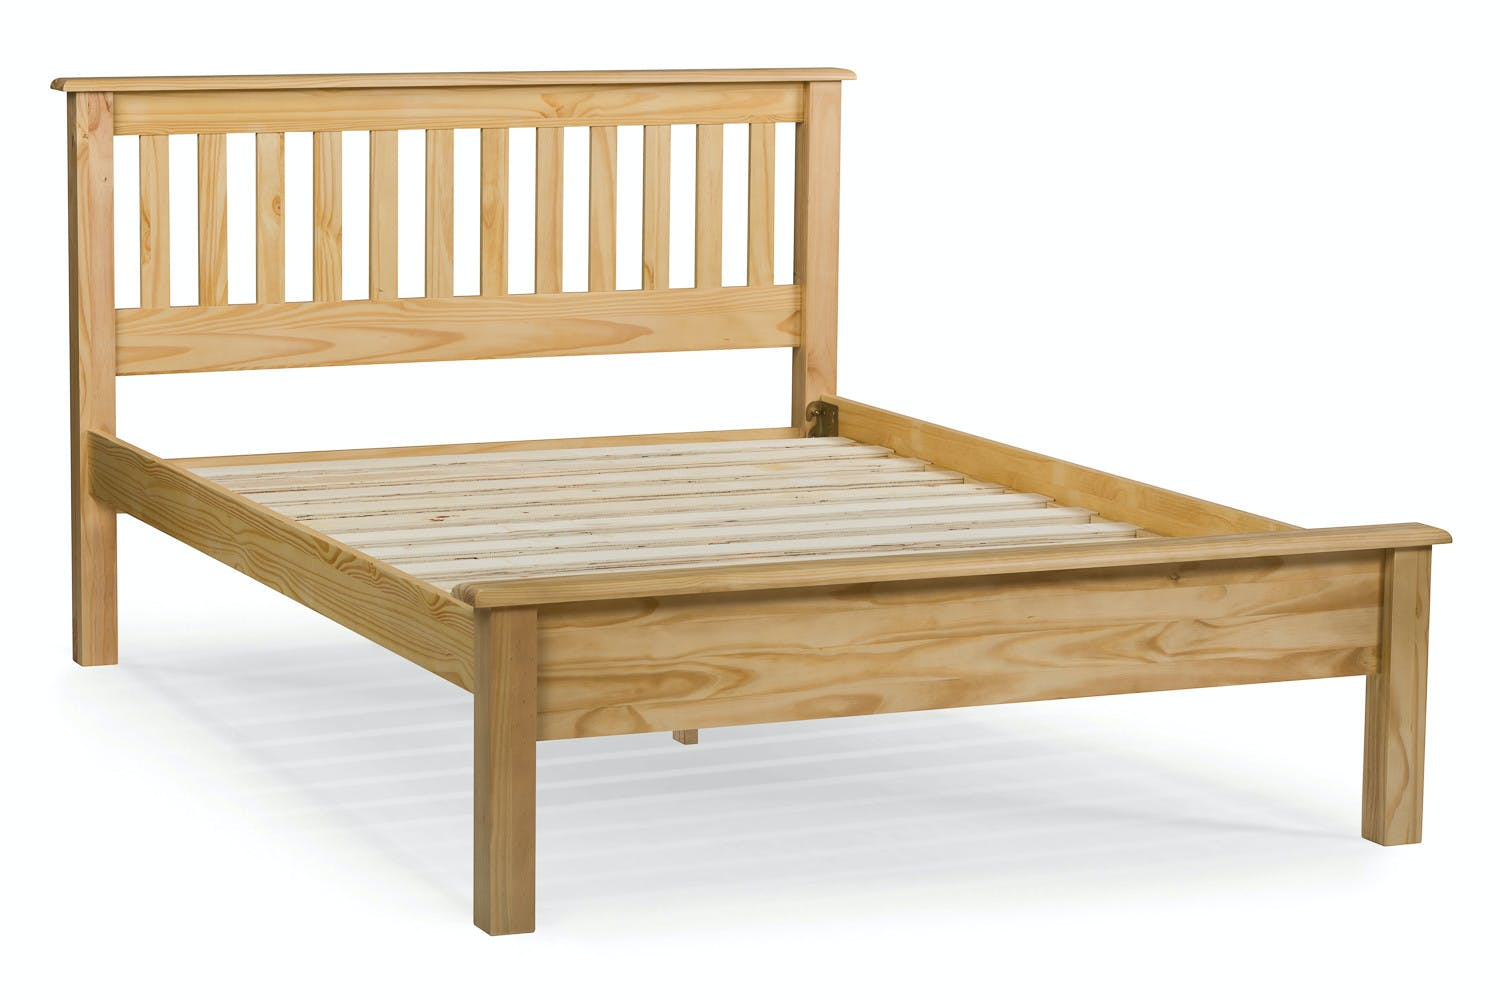 shaker small double bed frame 4ft - Double Bed Frame